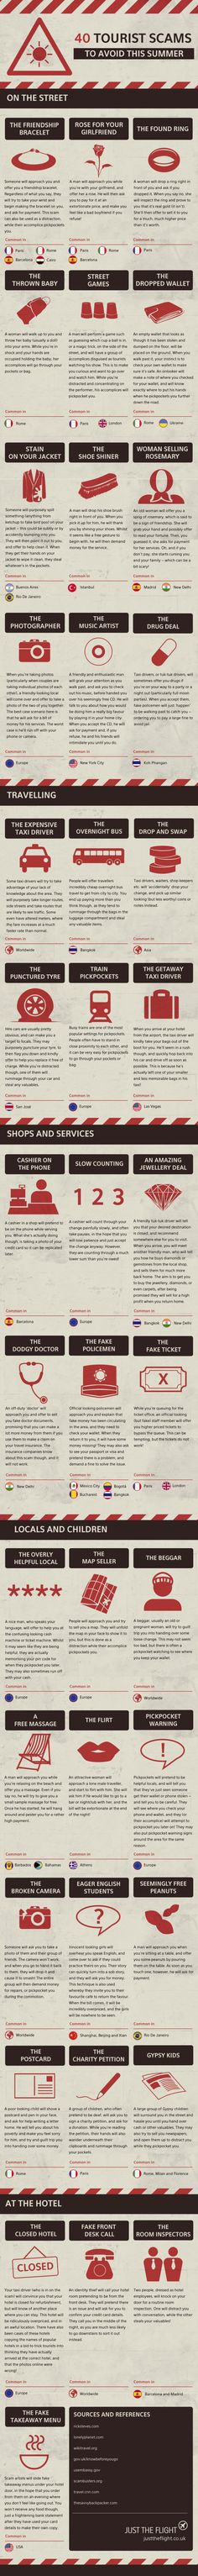 This Infographic Breaks Down the Most Common Travel Scams by Country